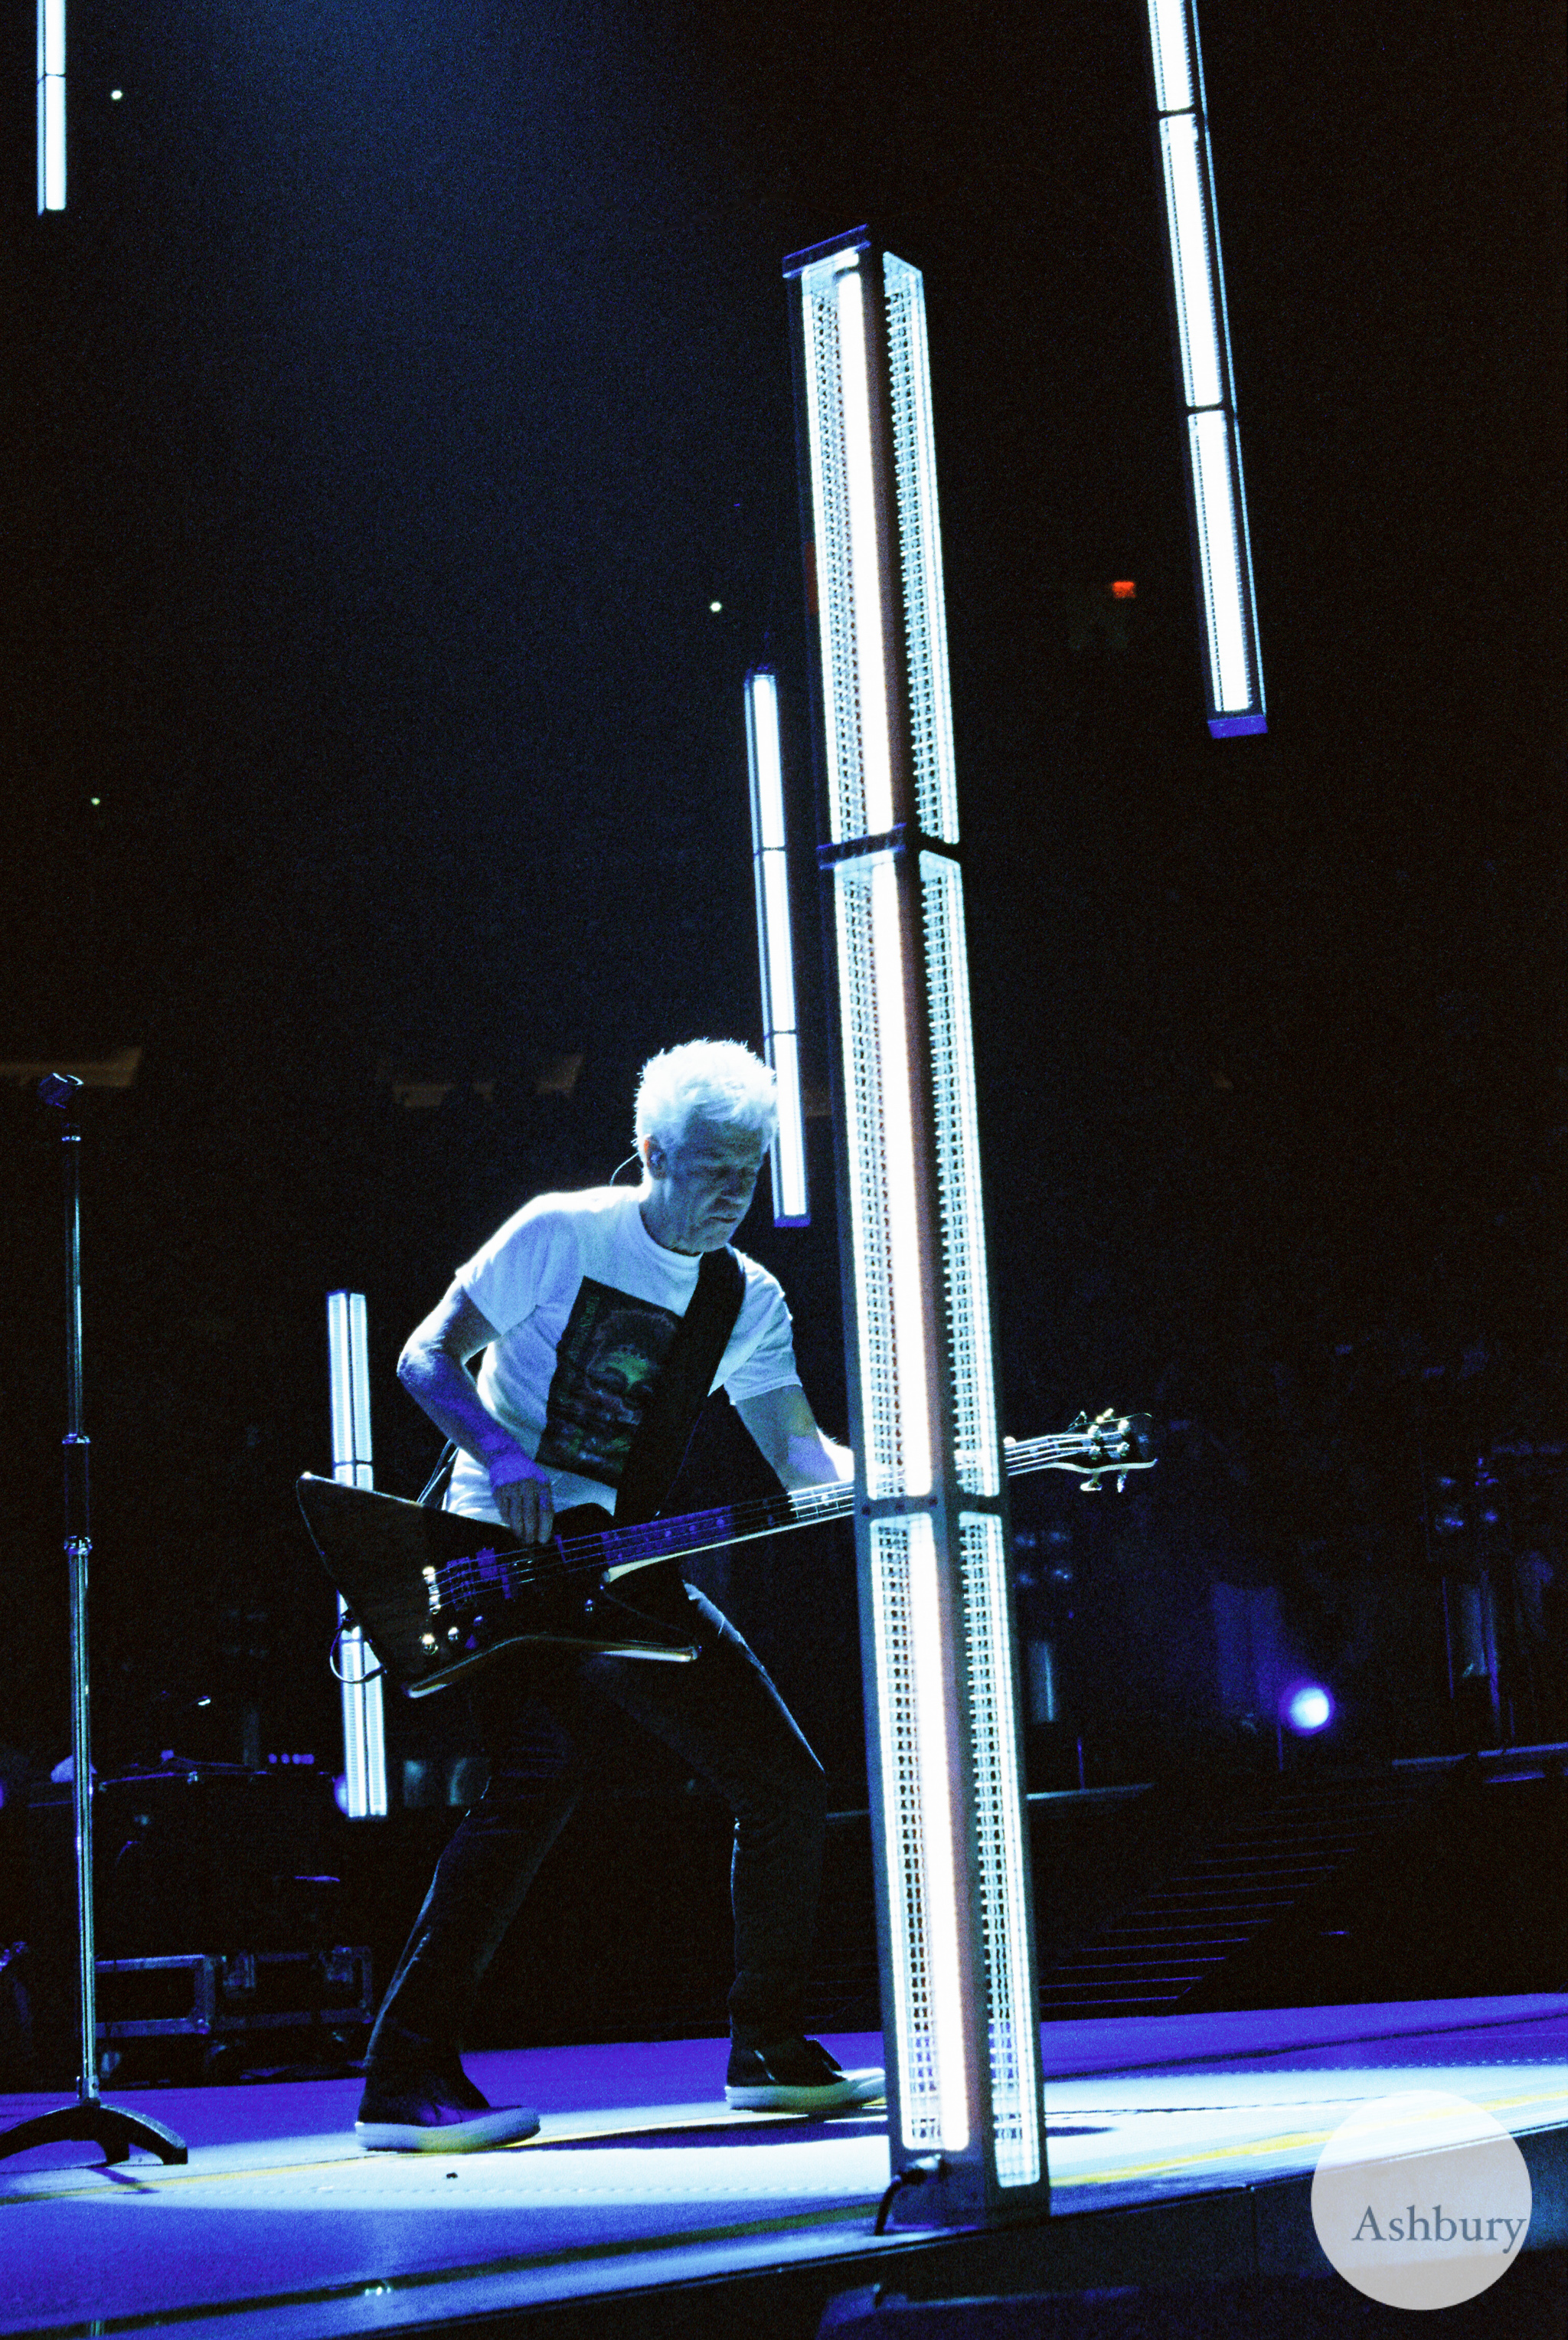 adam clayton of U2 u2ie tour MSG 07/19 cinestill 800